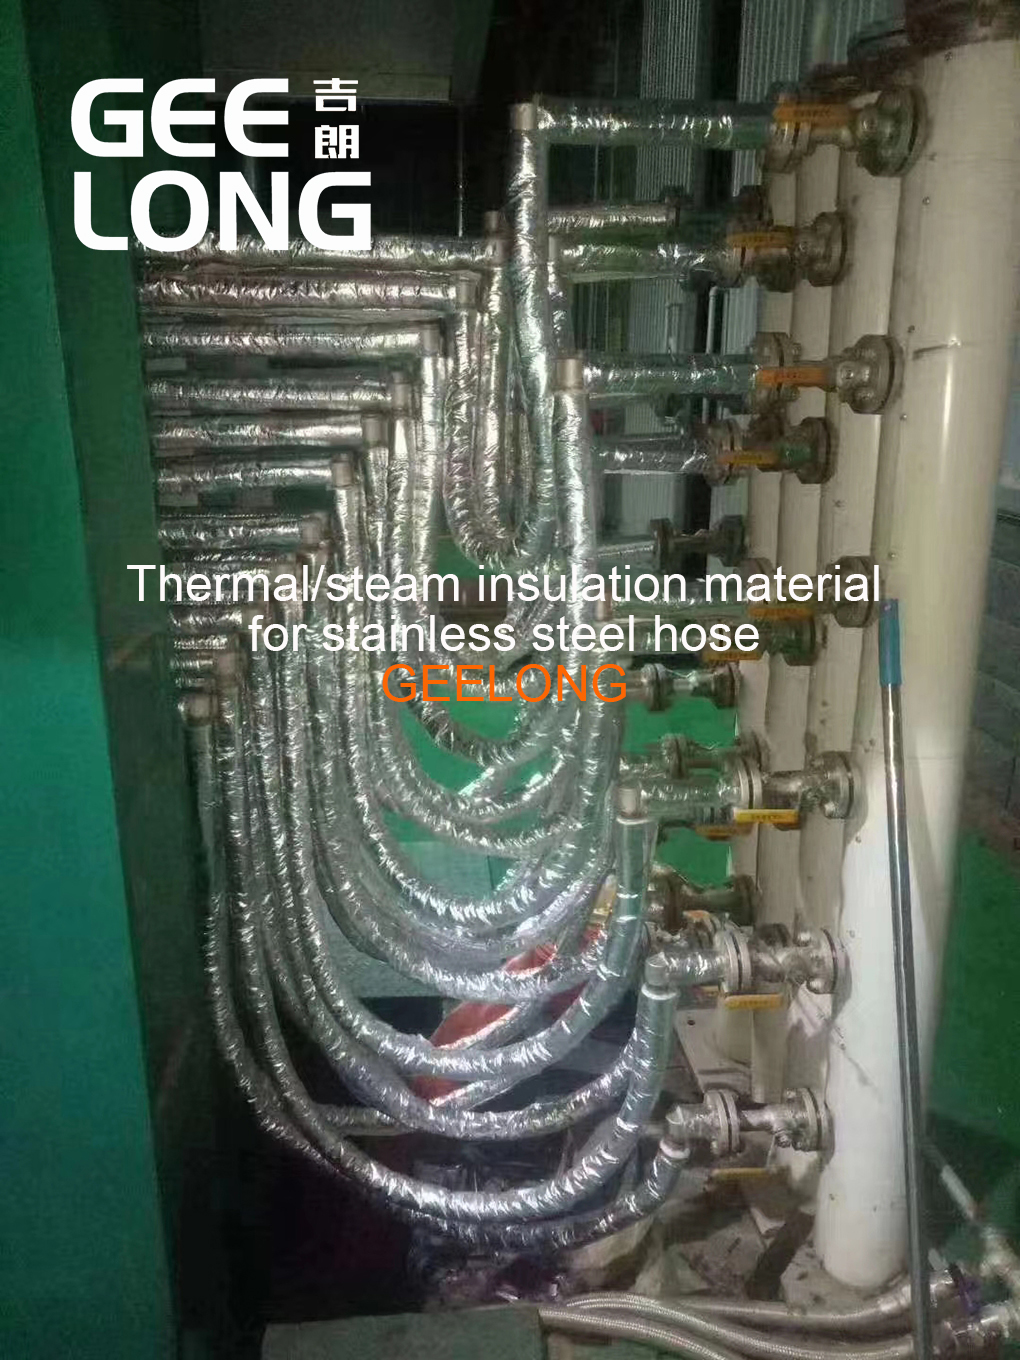 Thermal/steam insulation material for stainless steel hose